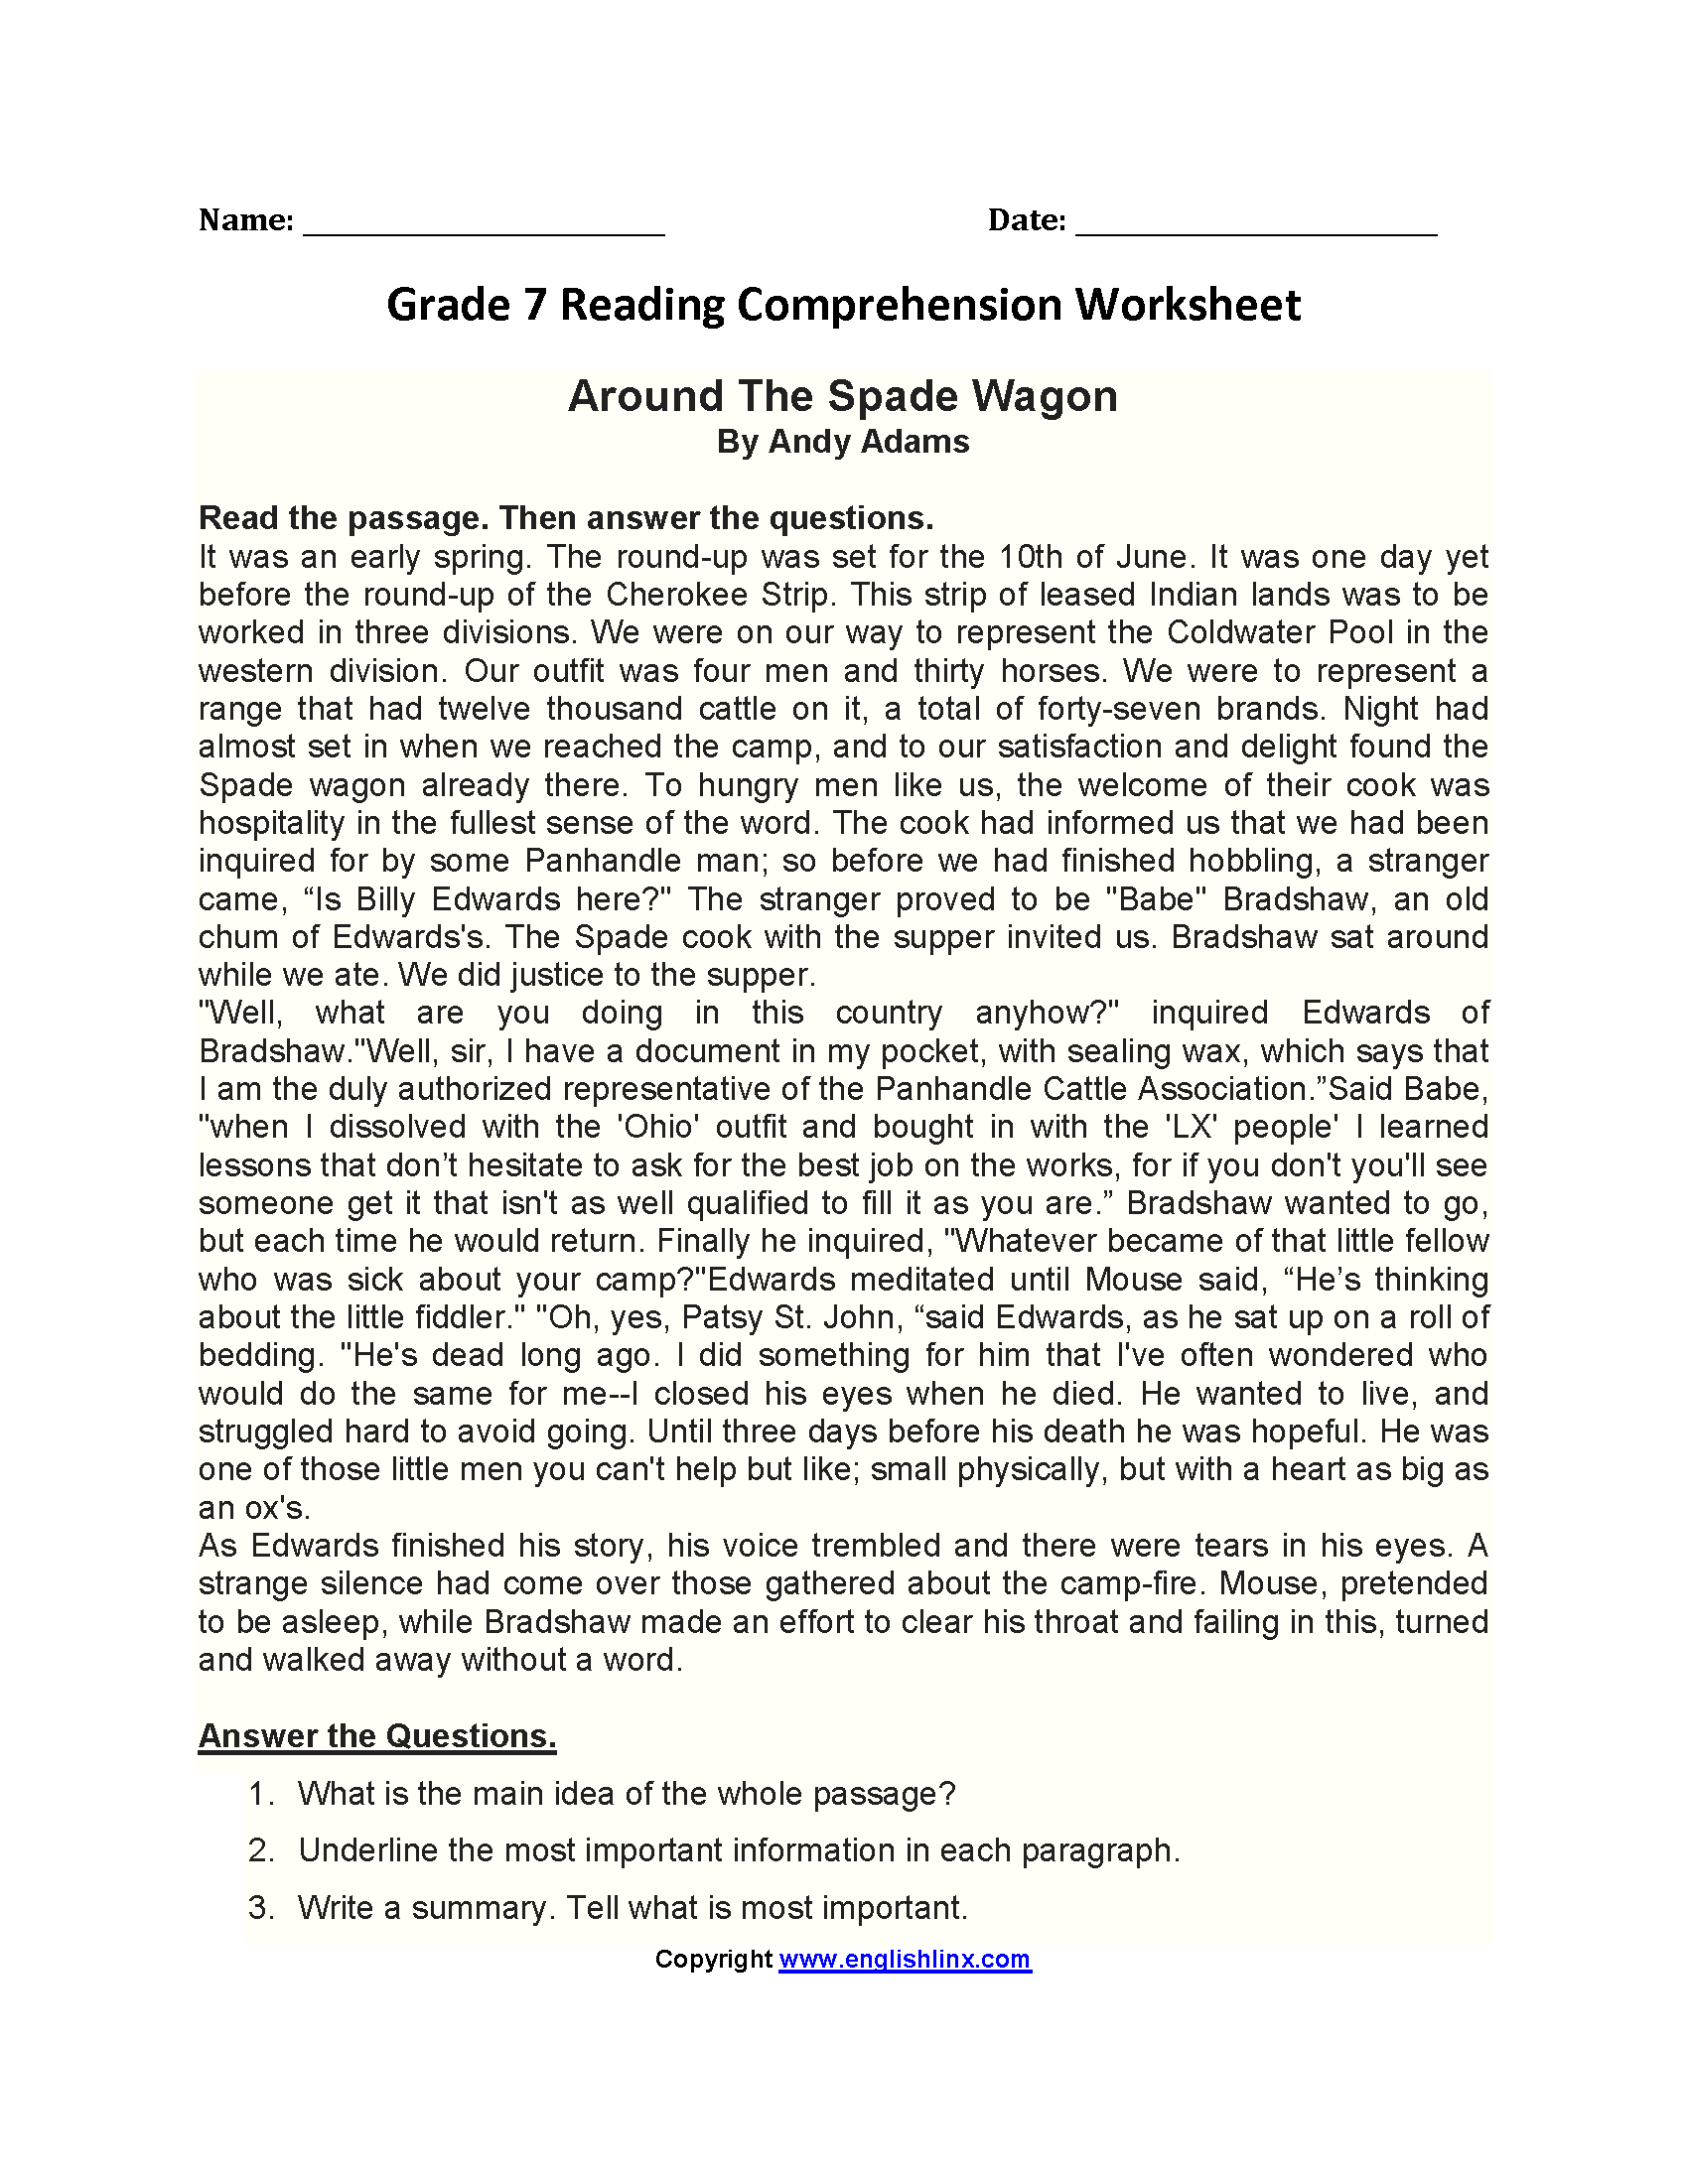 Worksheet Reading Worksheets For 7th Grade Grass Fedjp Worksheet Study Site